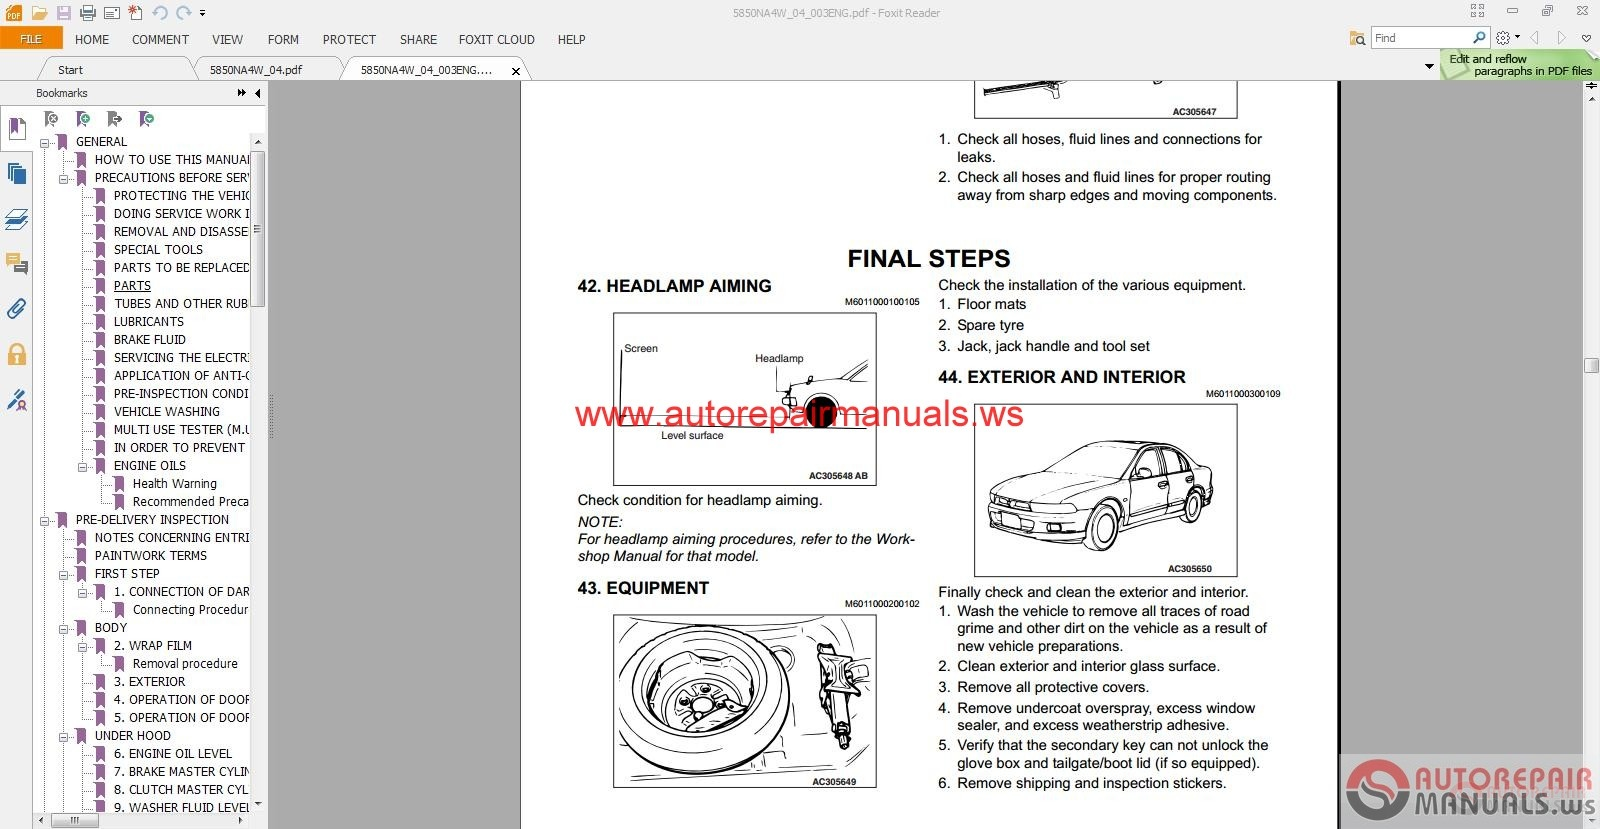 Mitsubishi Grandis 2004_2006 Service Manual | Auto Repair Manual Forum .